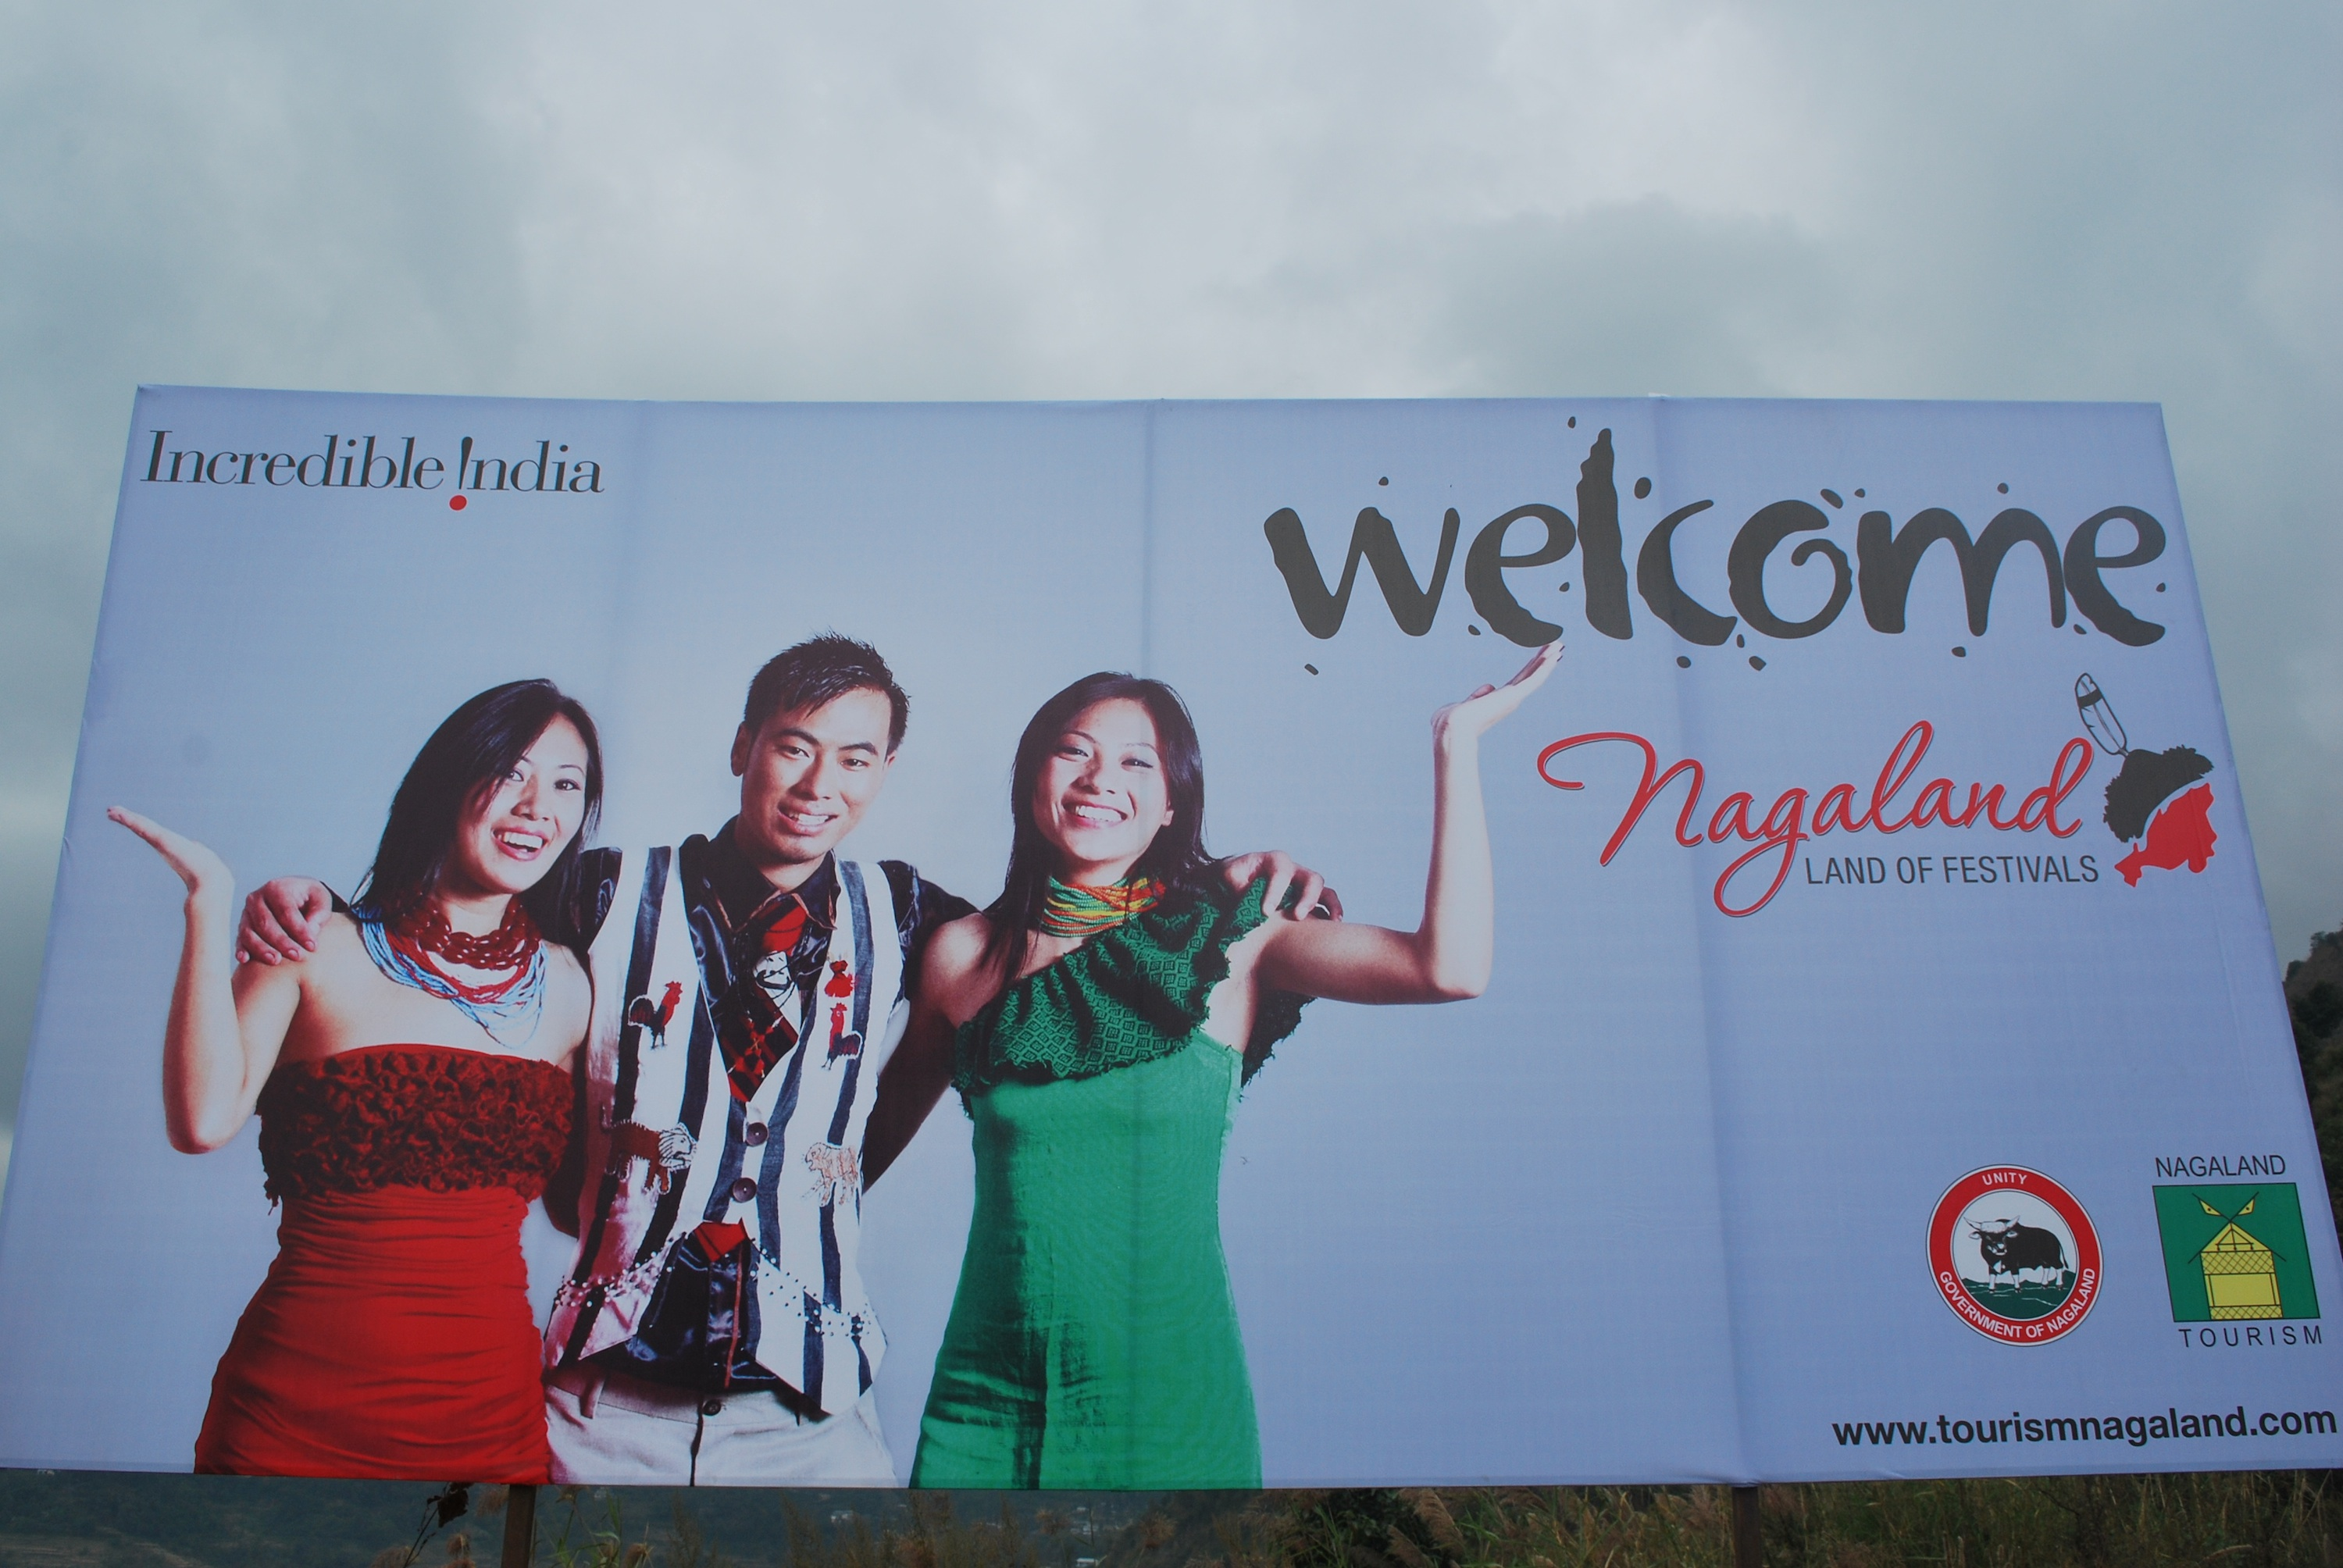 North by North-East: Trip to Nagaland, Assam & Meghalaya